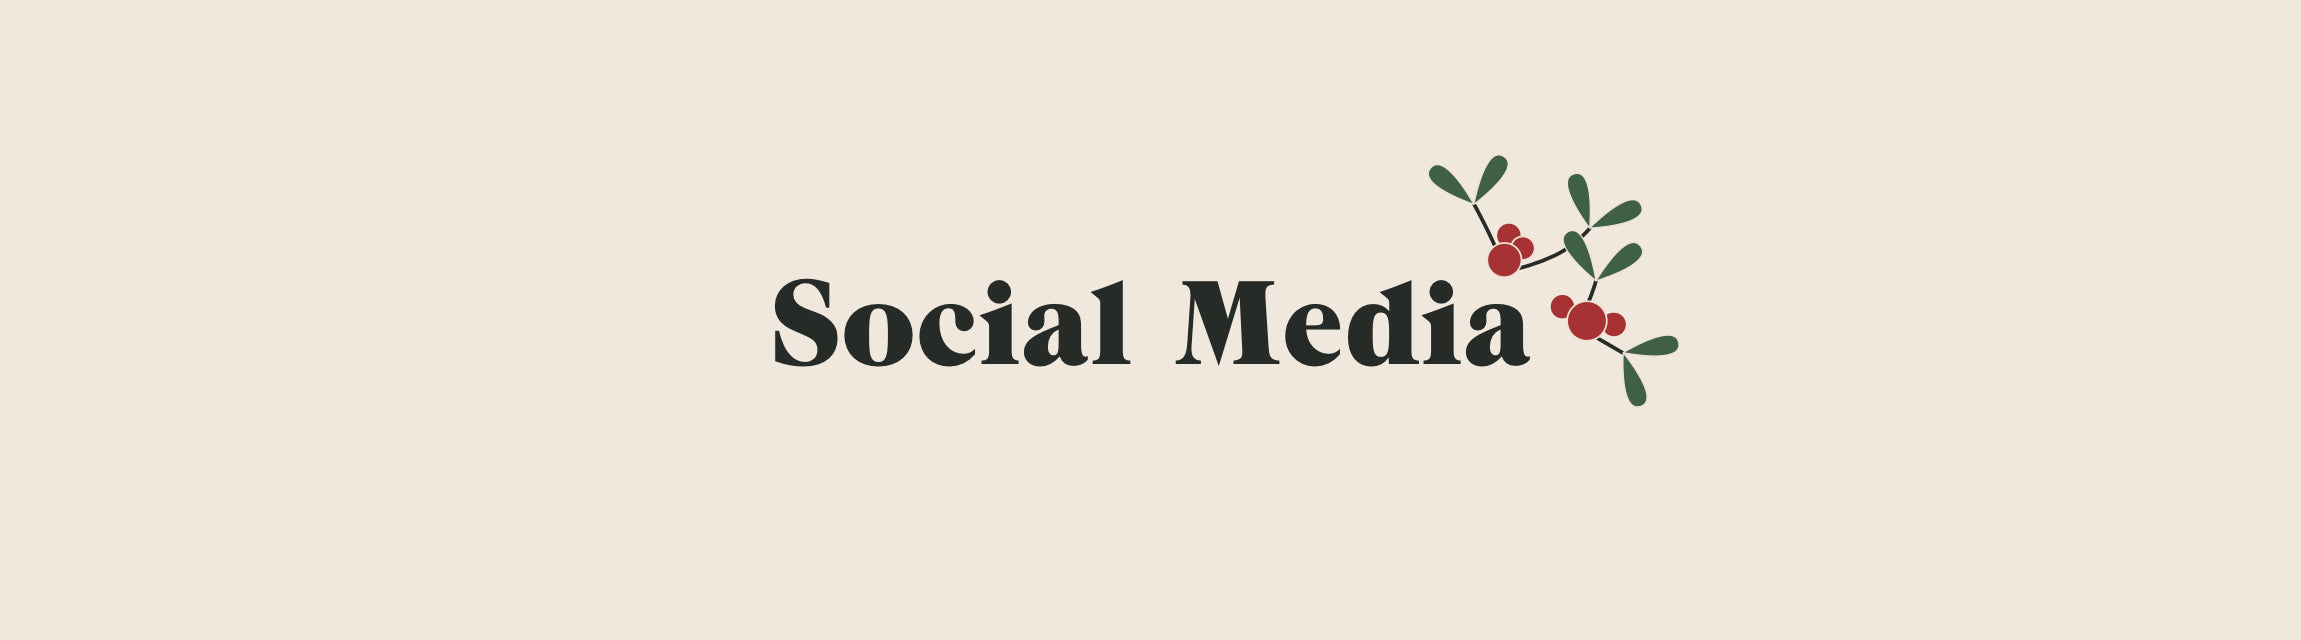 Social Media title with mistletoe icon